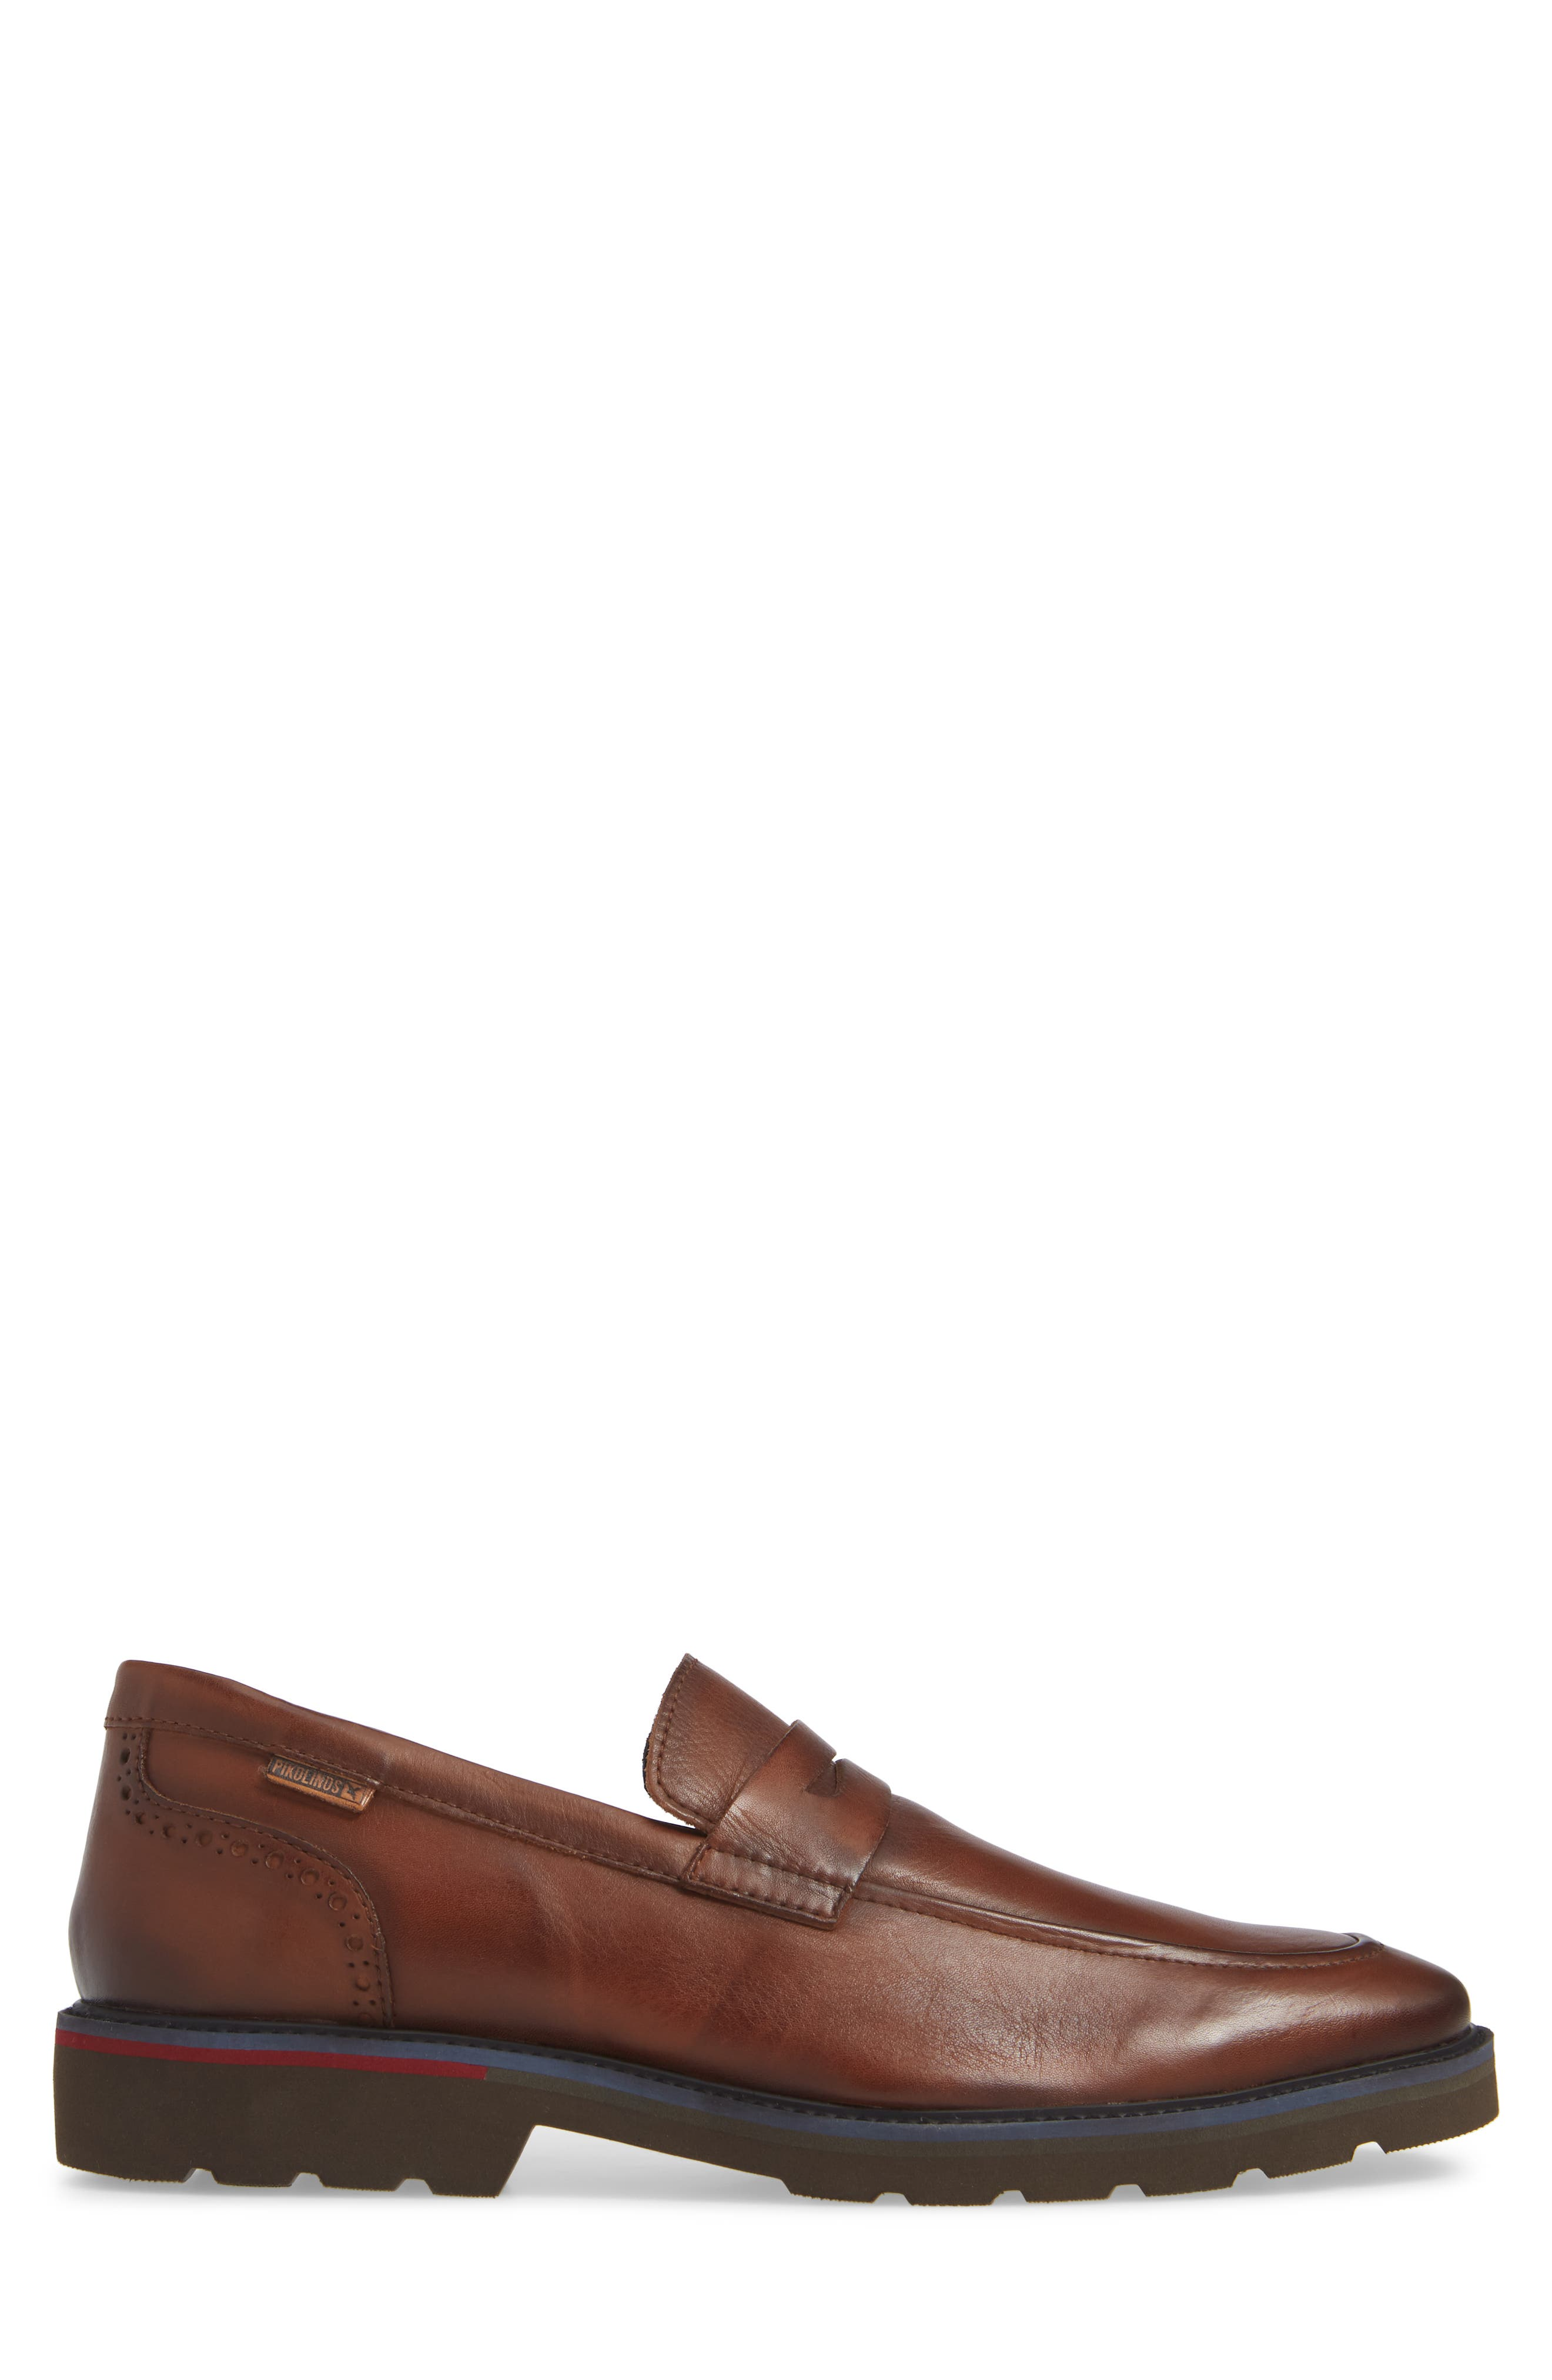 Salou Penny Loafer,                             Alternate thumbnail 3, color,                             203